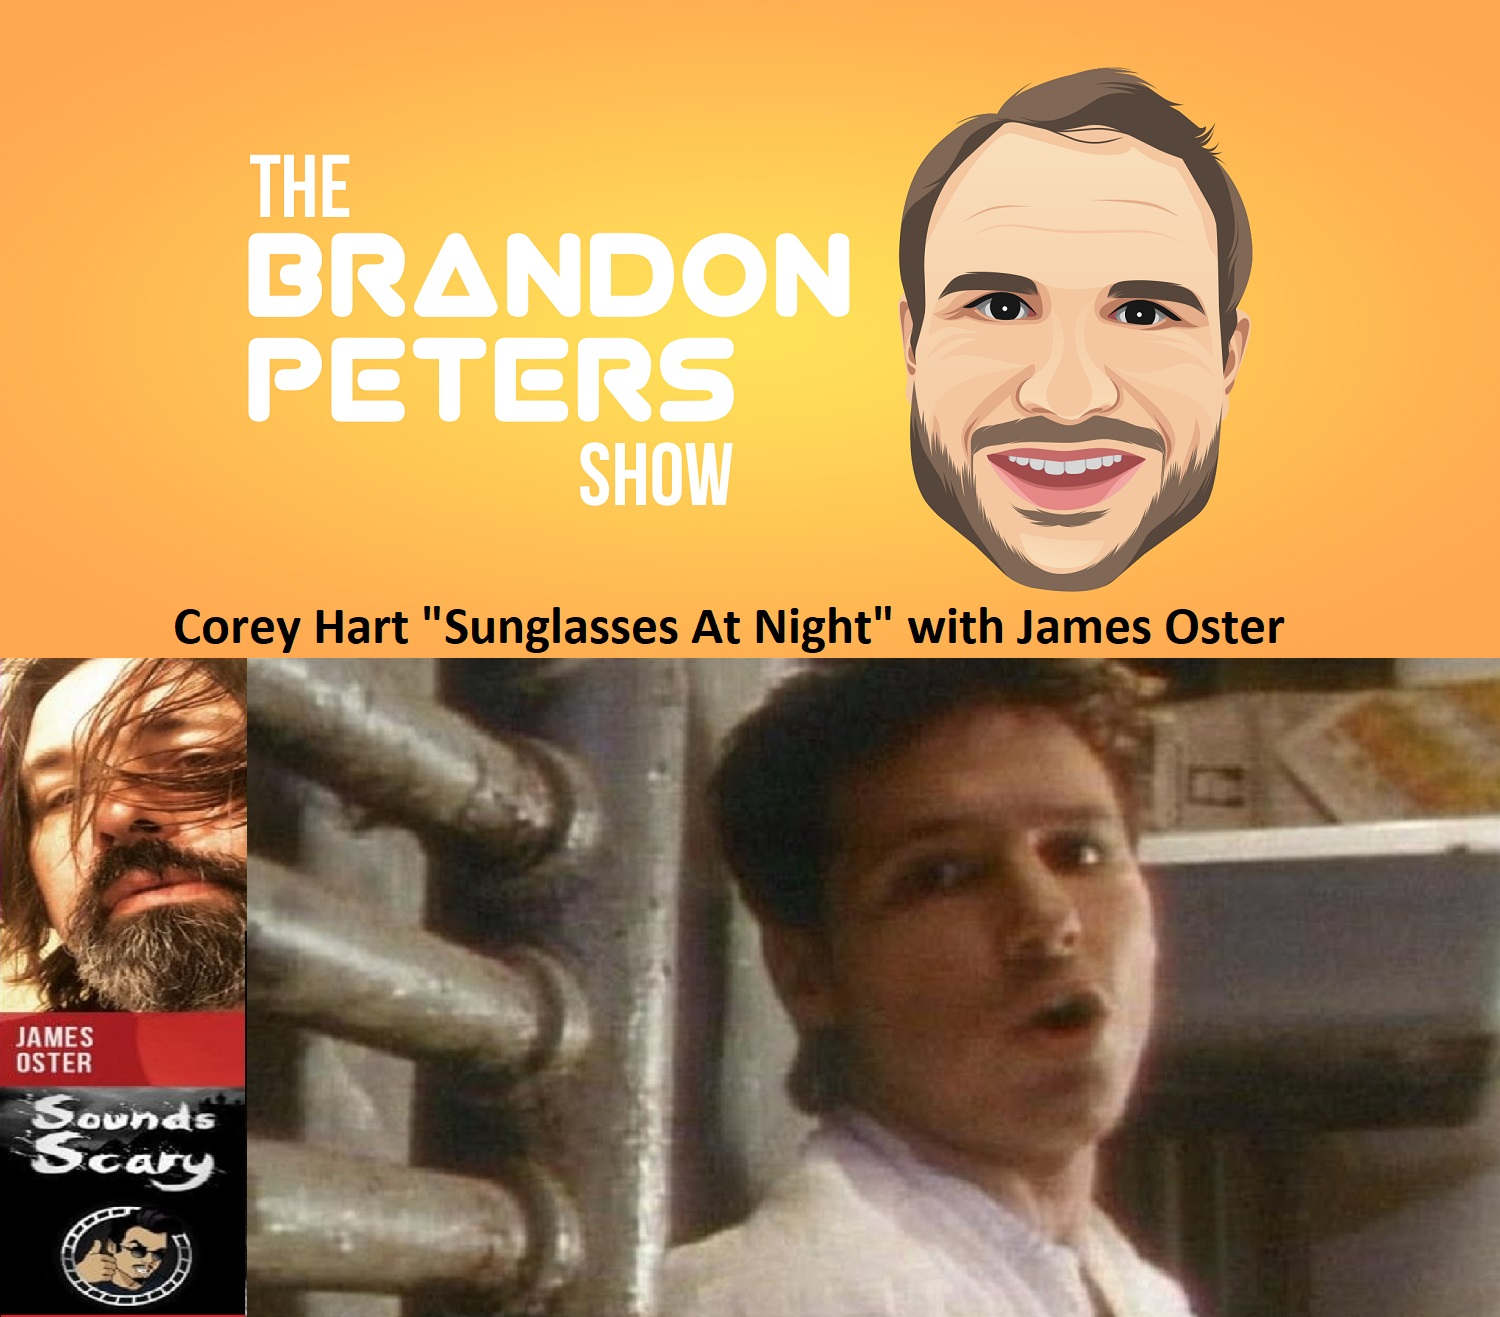 """Closing With A Song """"Sunglasses at Night'"""" by Corey Hart with James Oster"""